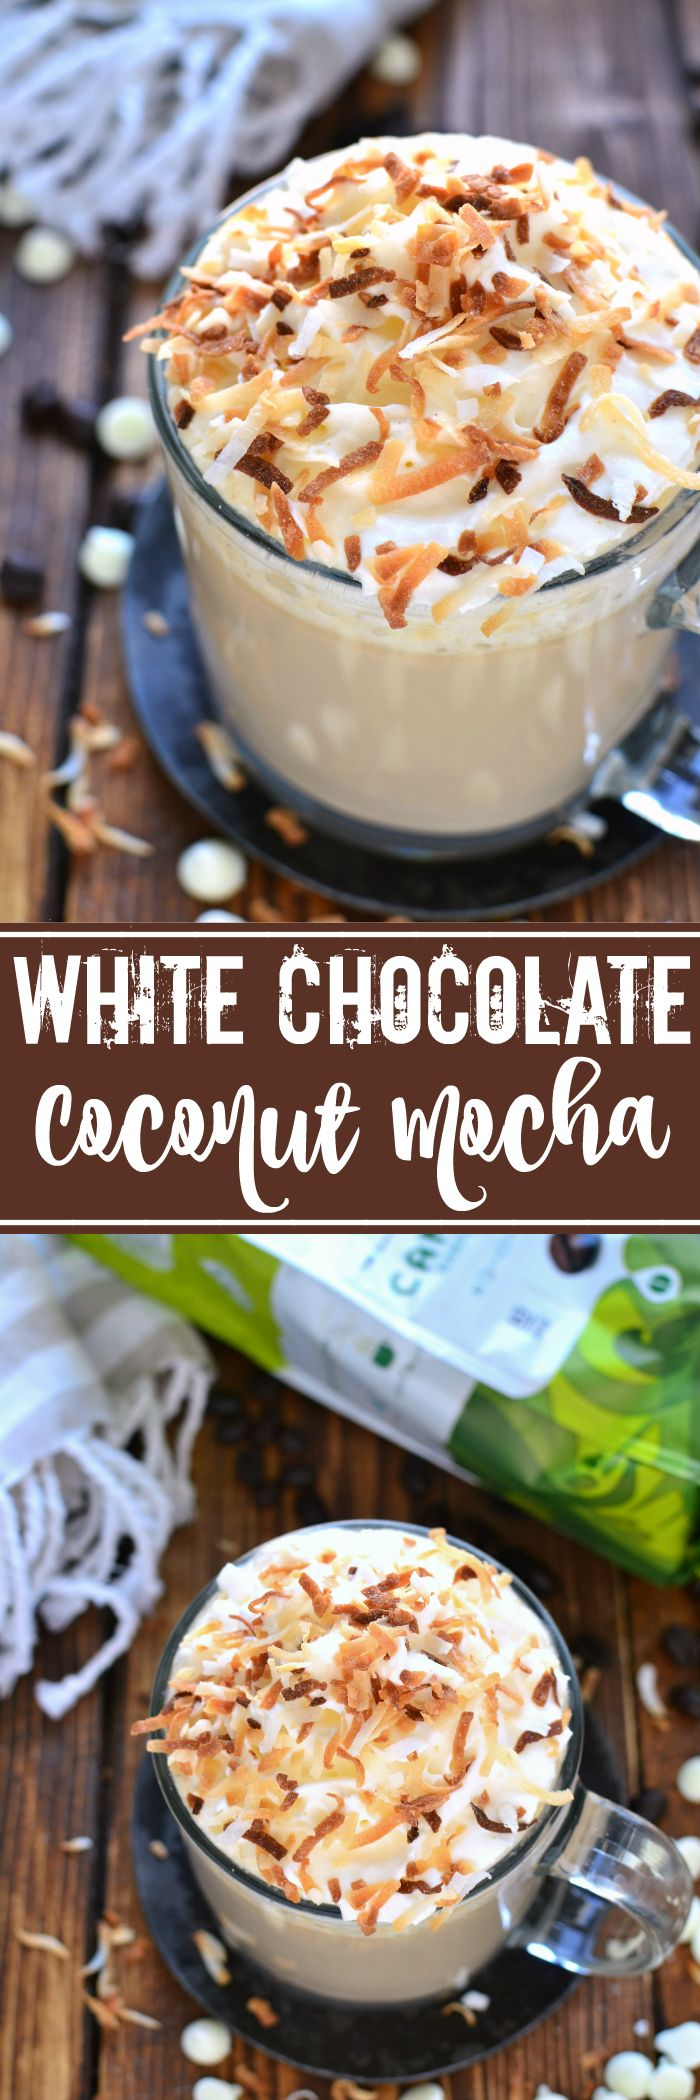 This Coconut White Chocolate Mocha is just like your favorite coffeehouse special! The perfect way to treat yourself....at home! @cameronscoffee #spon